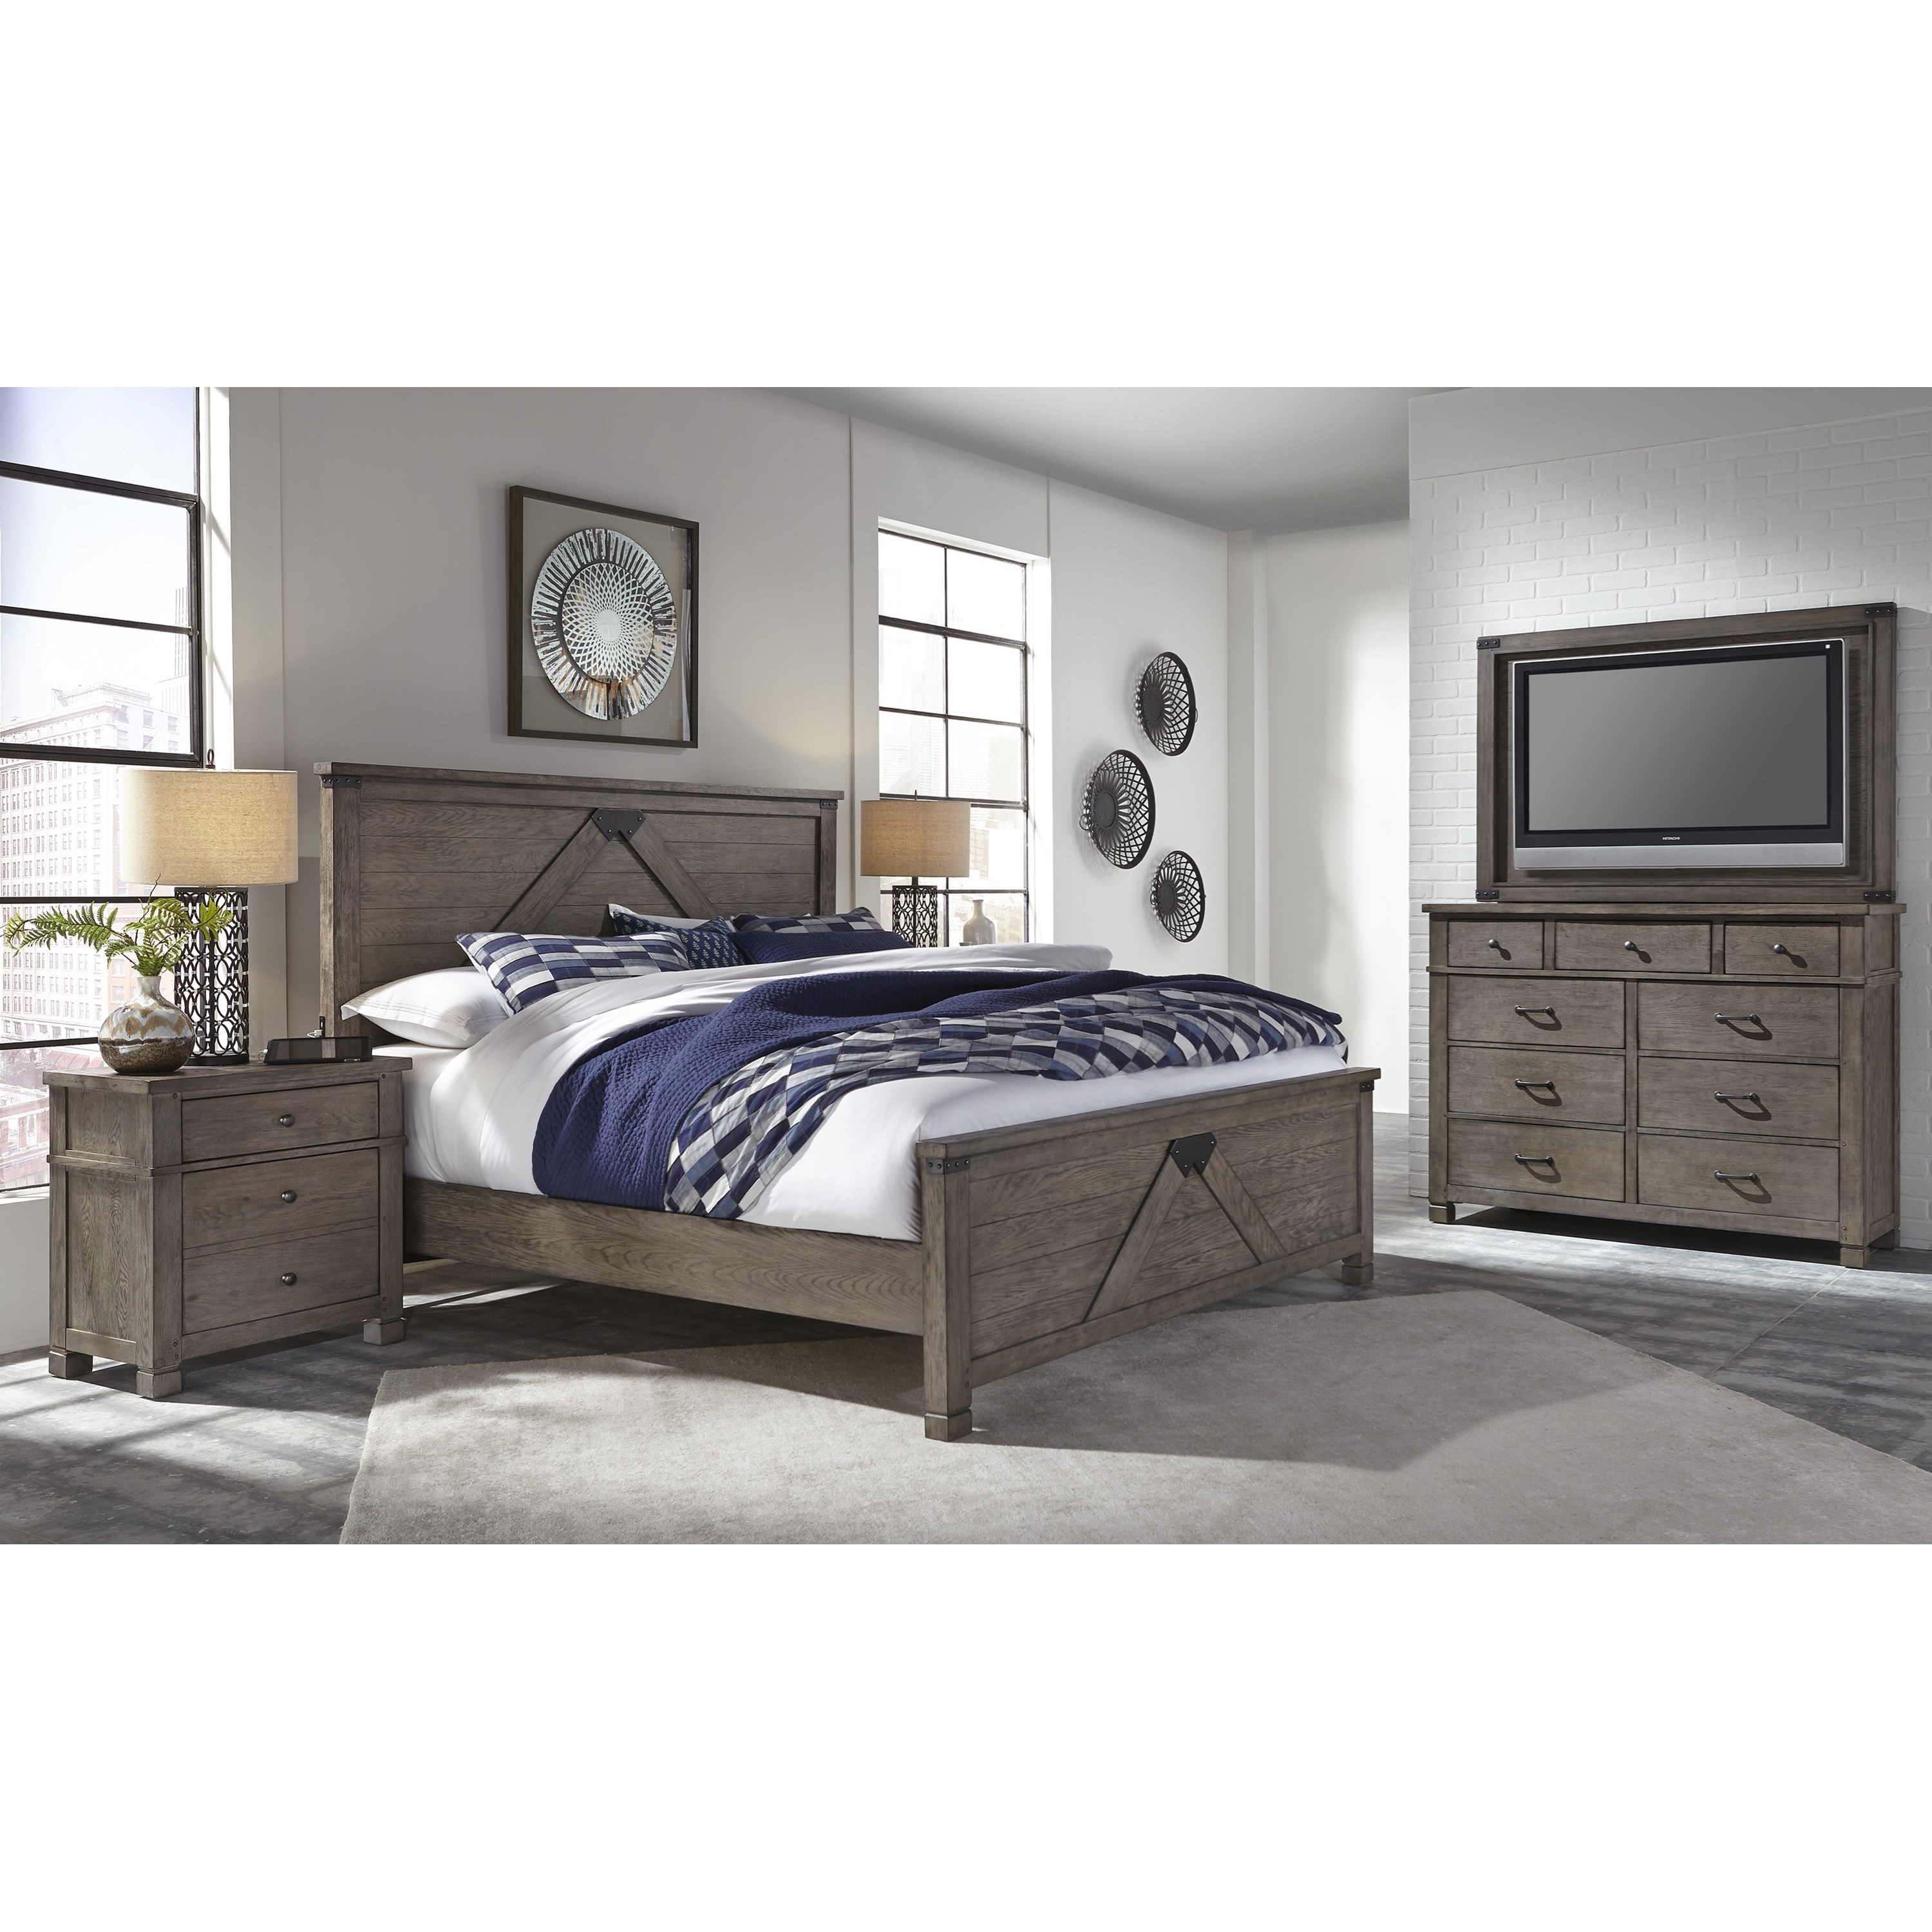 Tucker Queen Bedroom Group by Aspenhome at Baer's Furniture